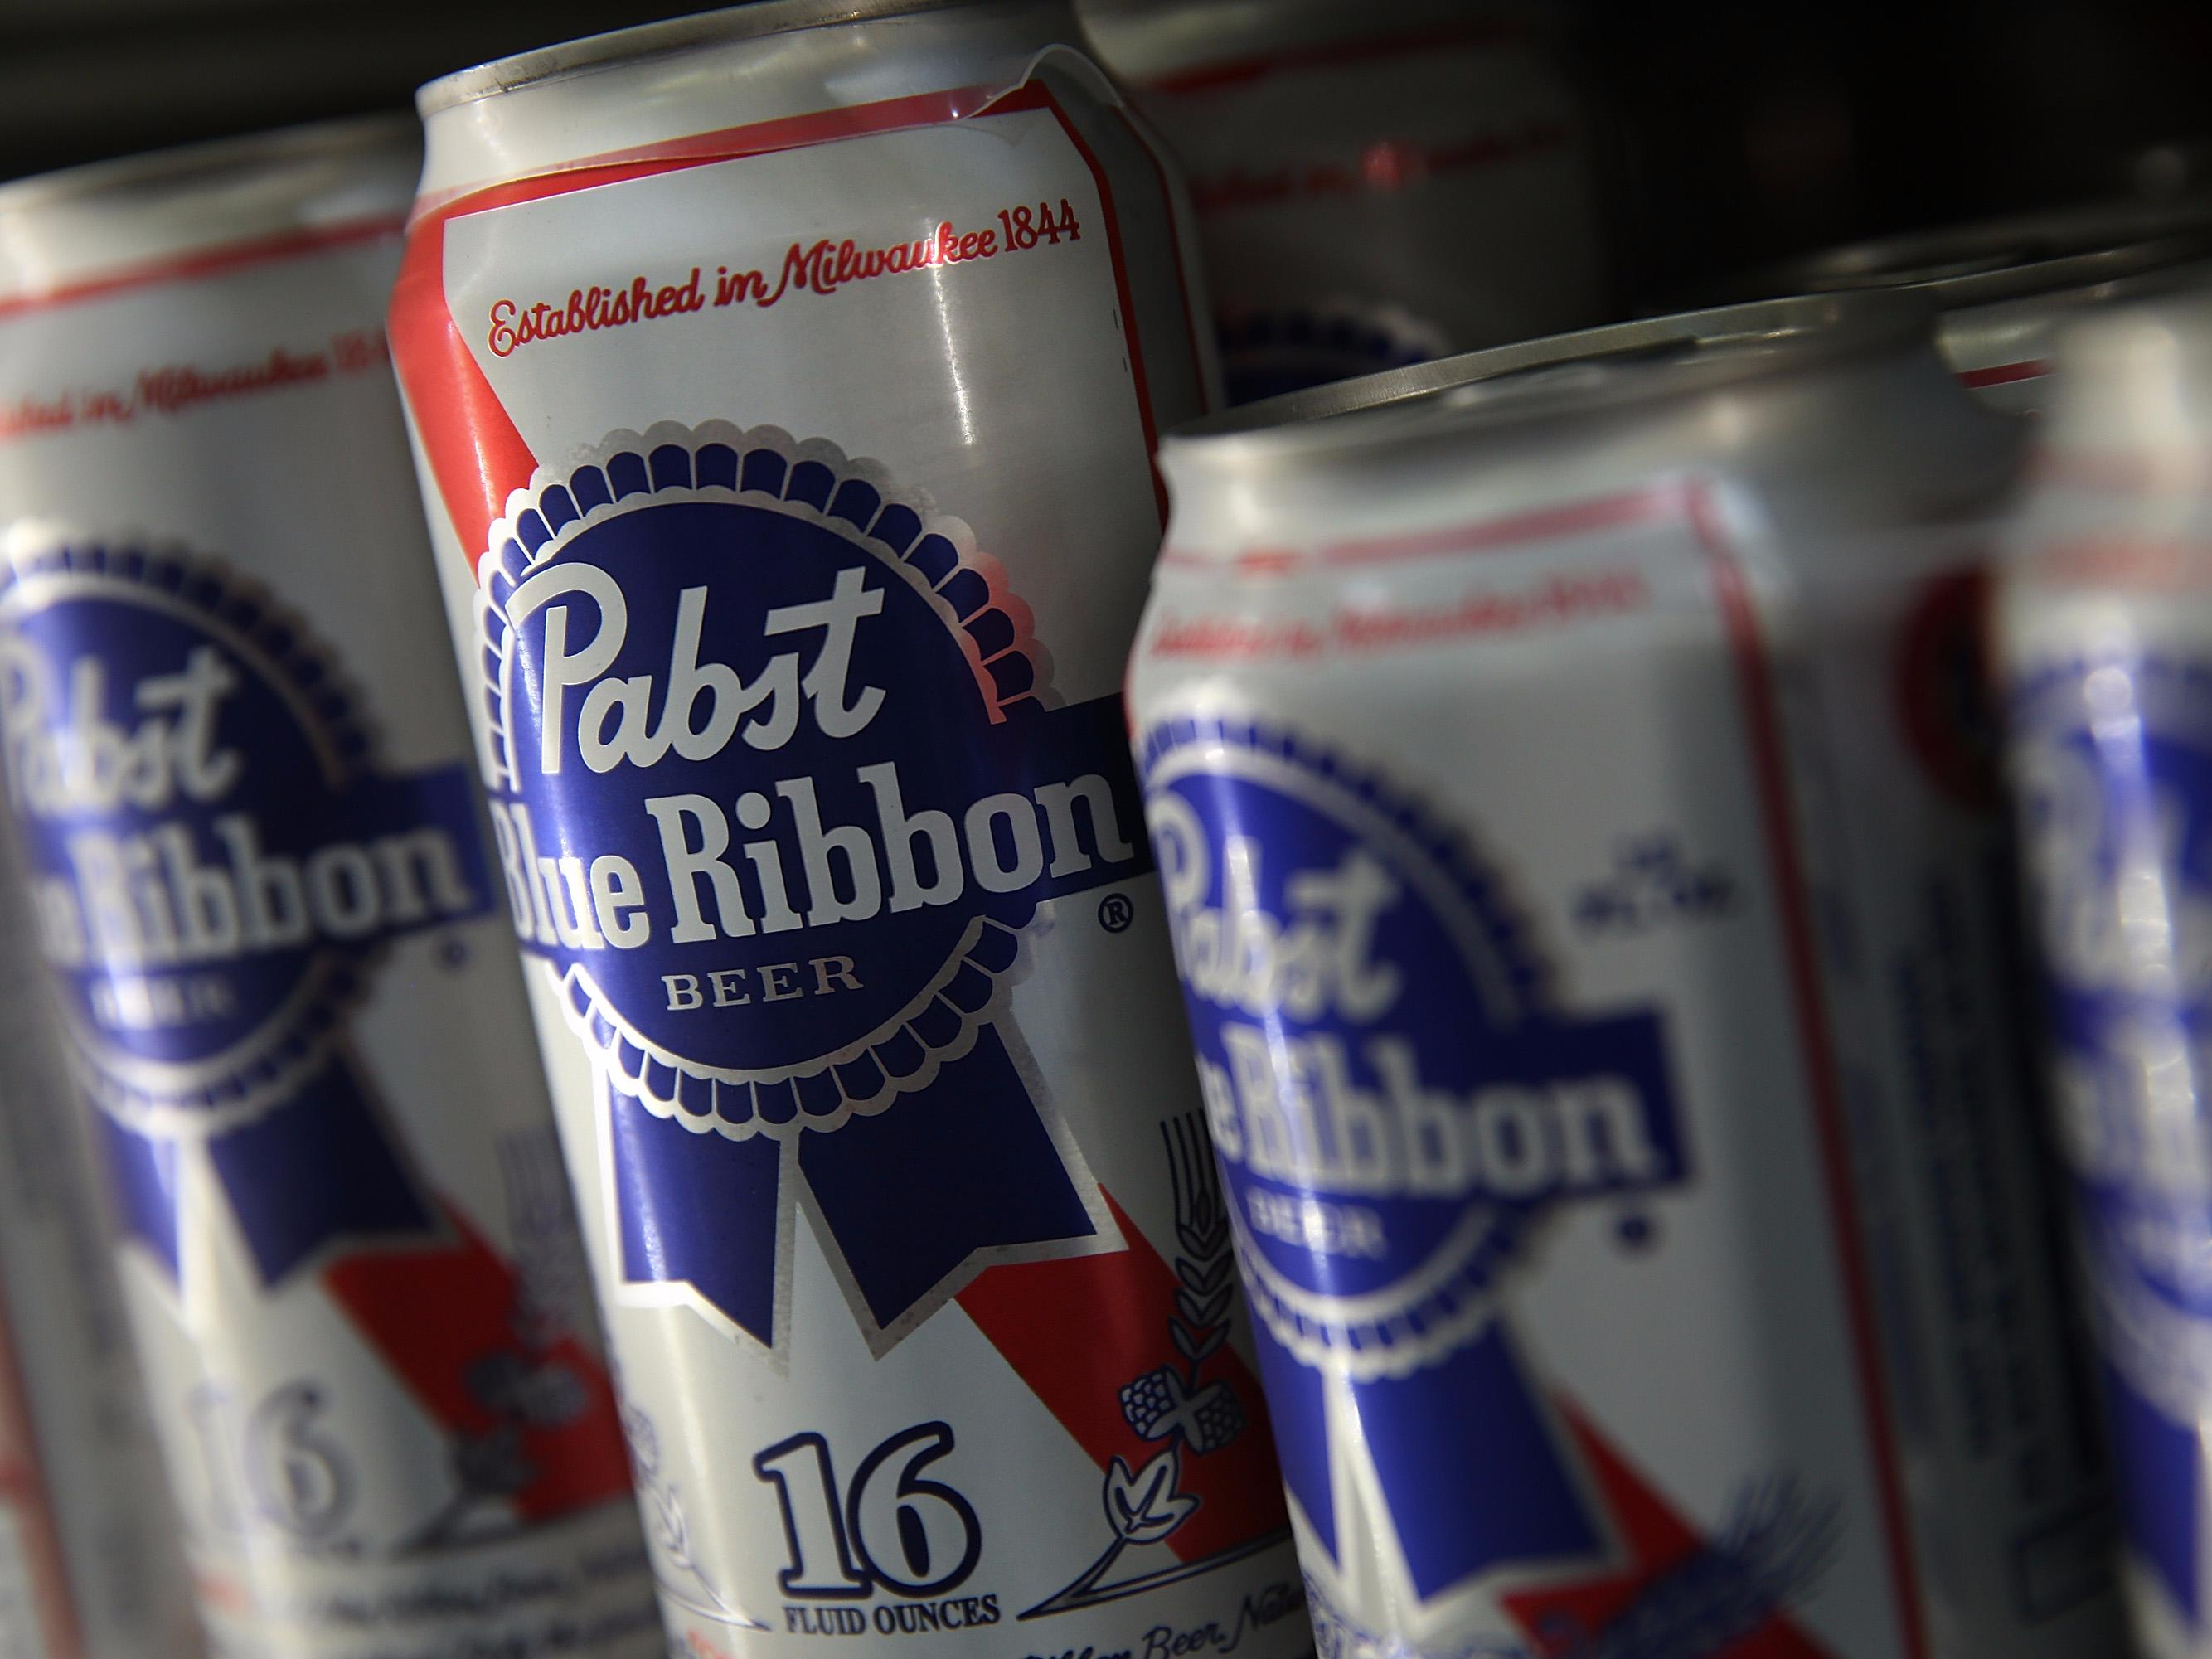 Here's how 170-year-old beer maker Pabst is using predictive analytics to reinvent itself